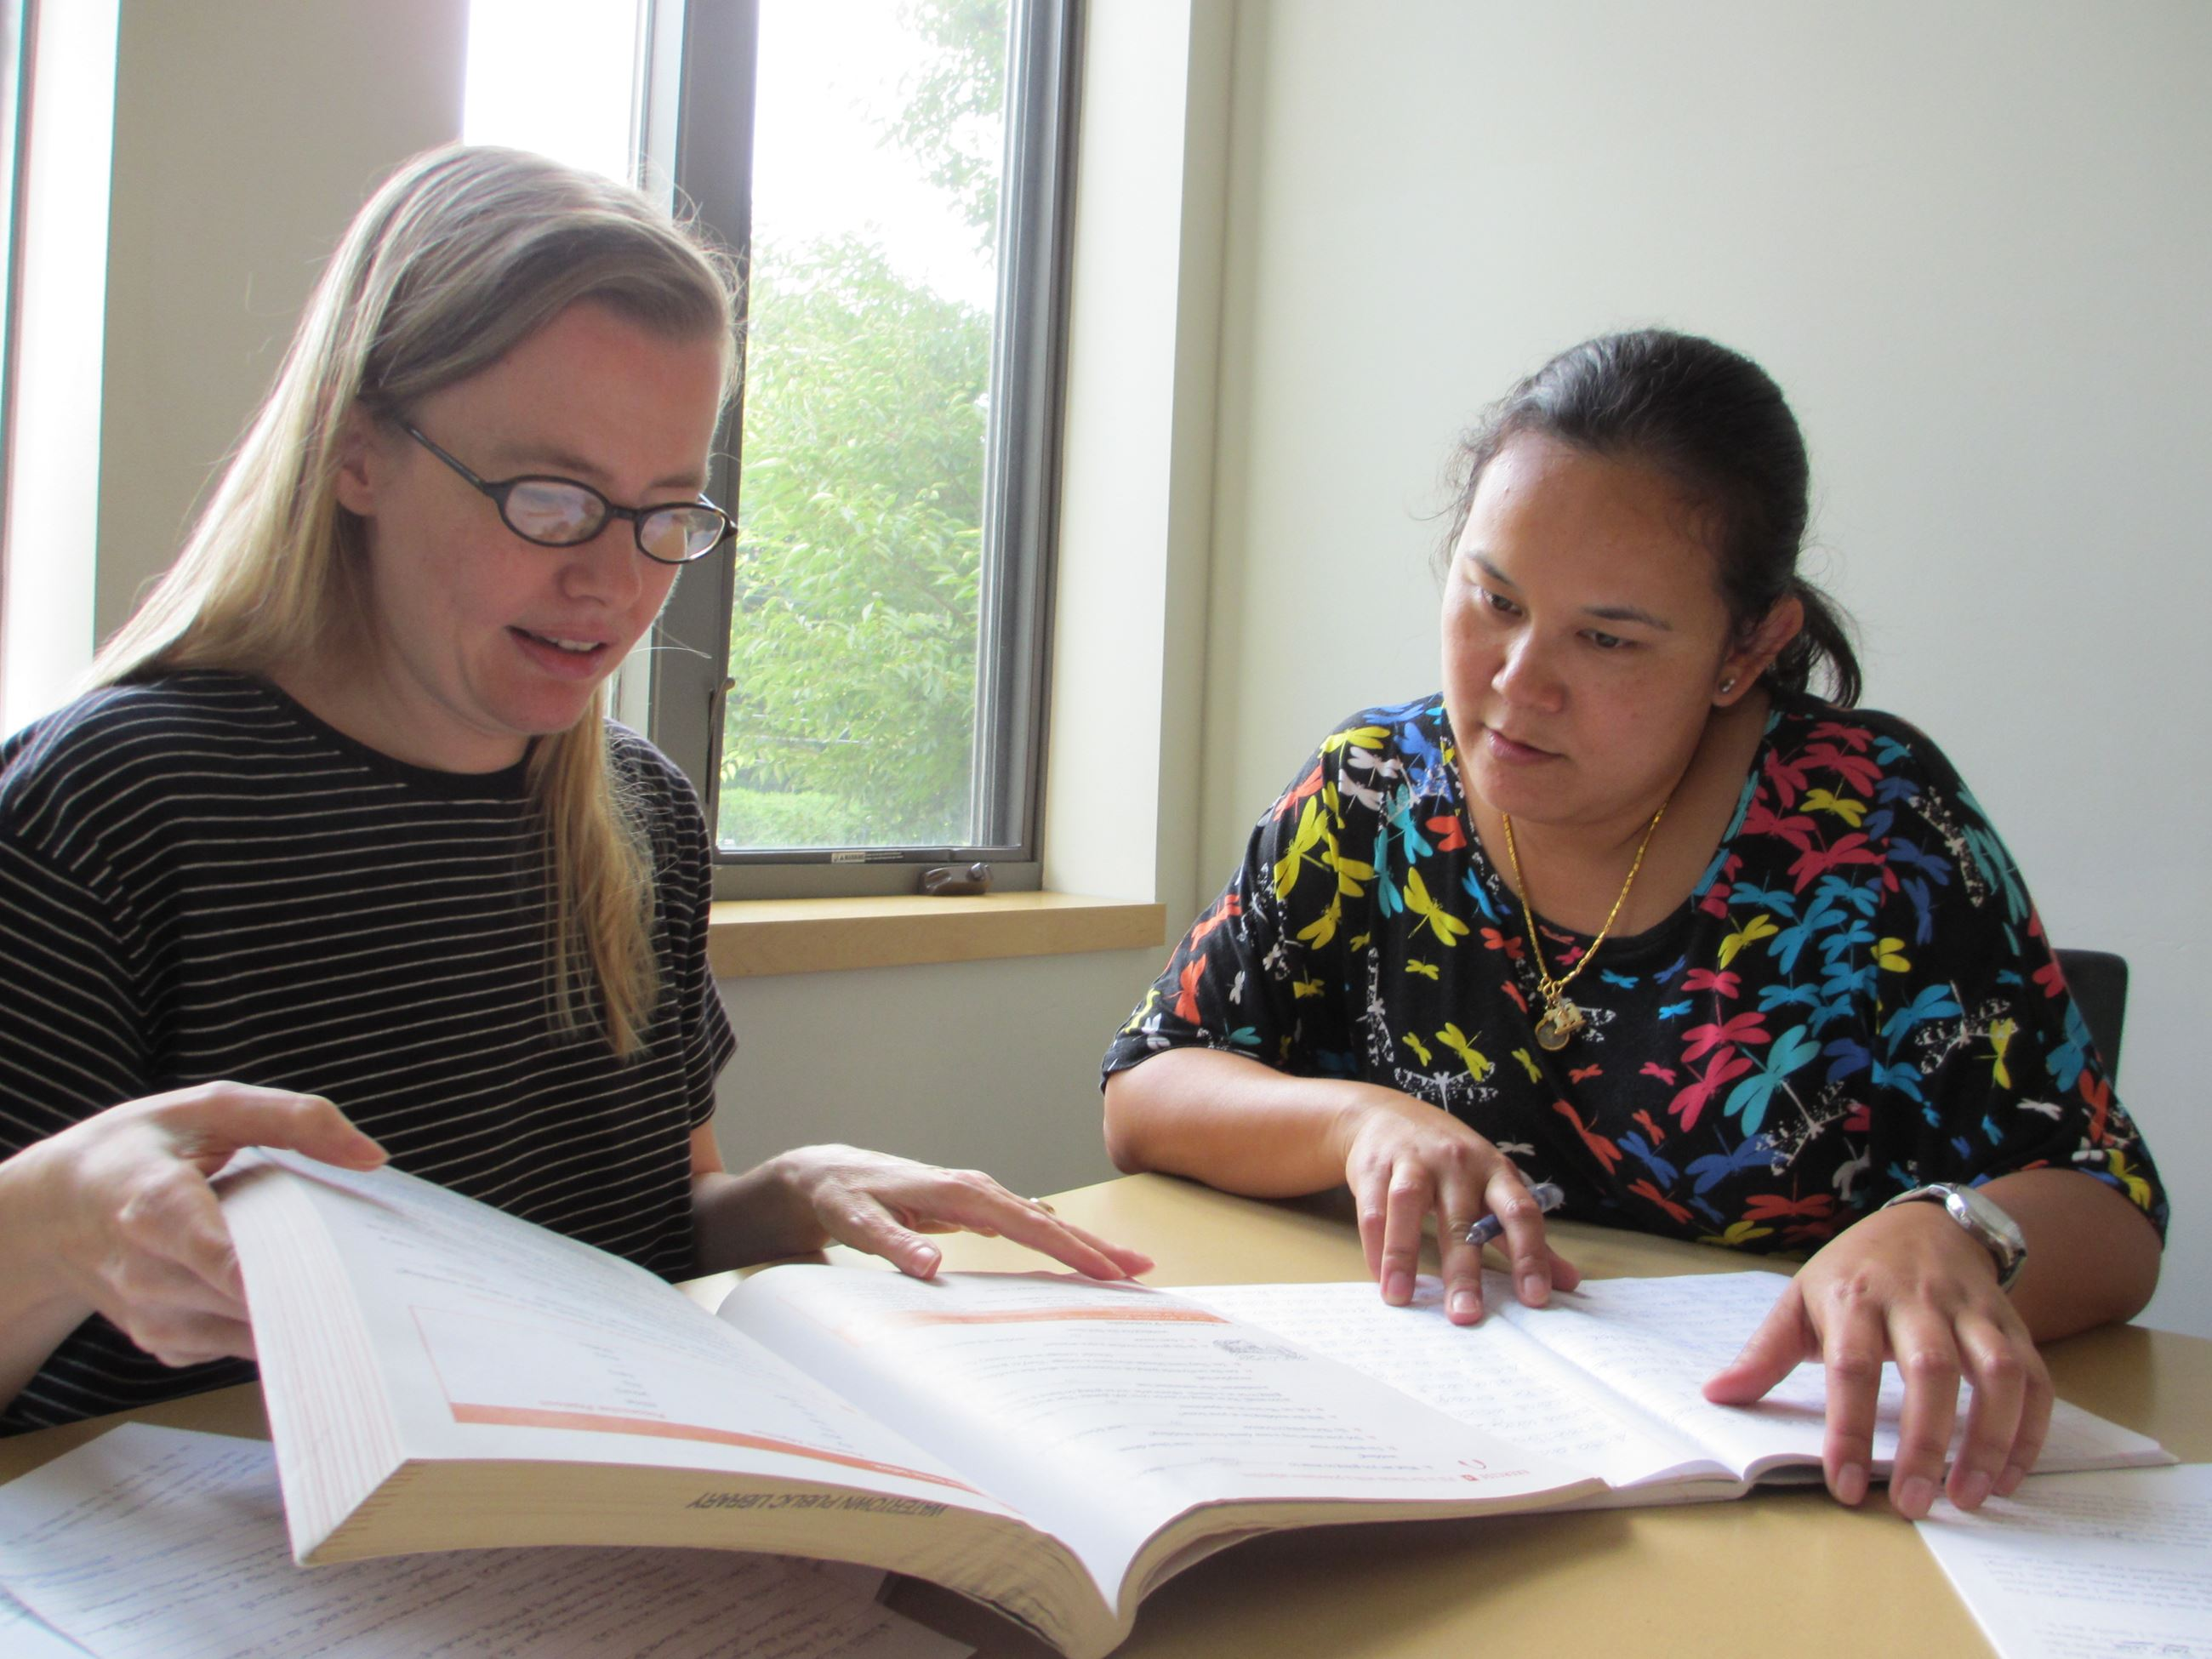 Project Literacy tutor and student looking at a textbook together